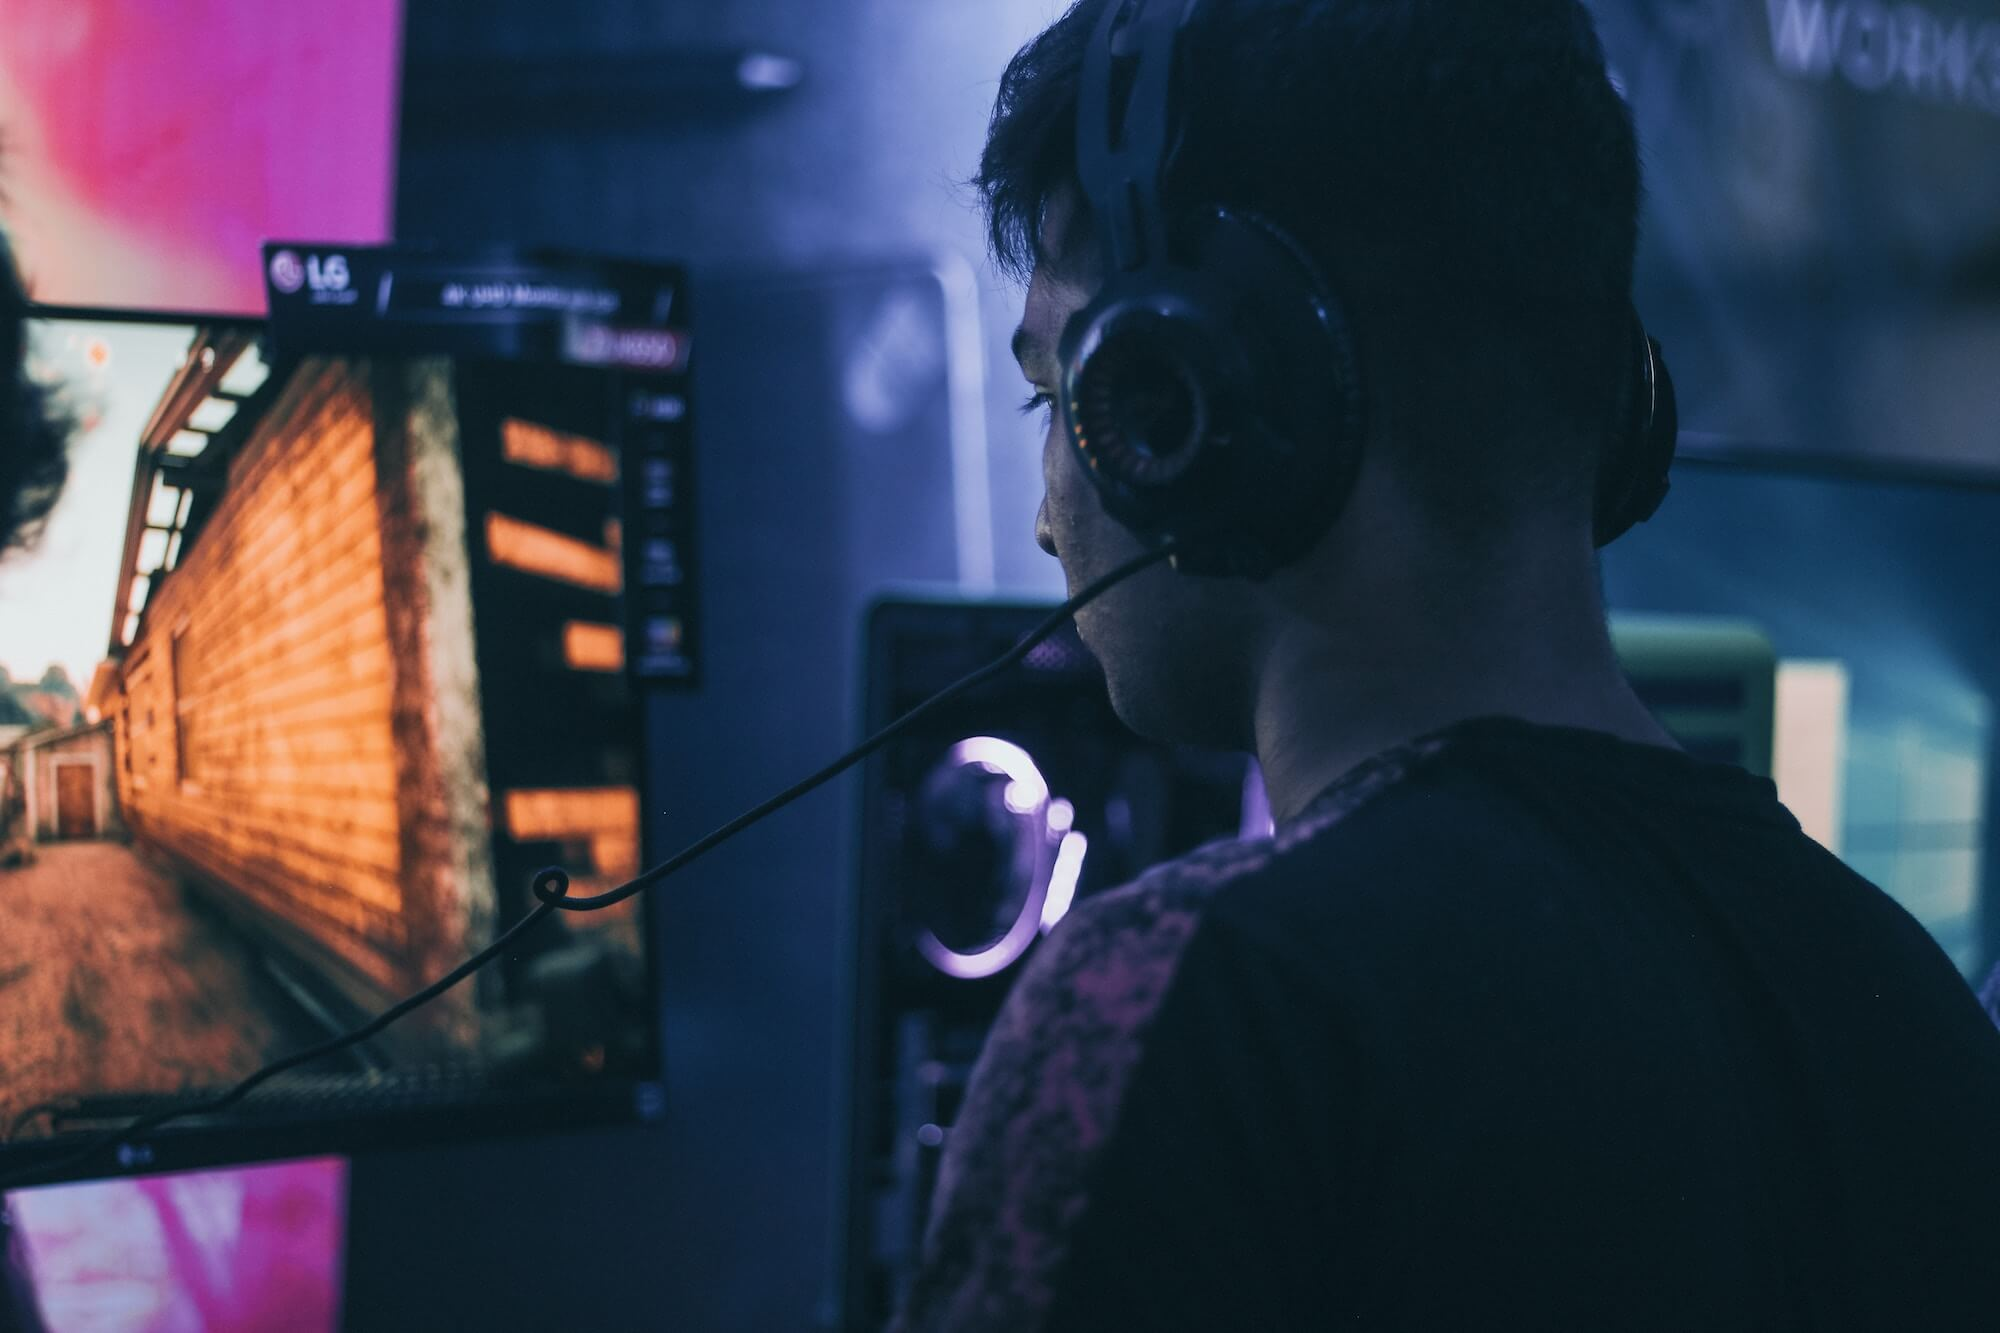 man in a headset playing games